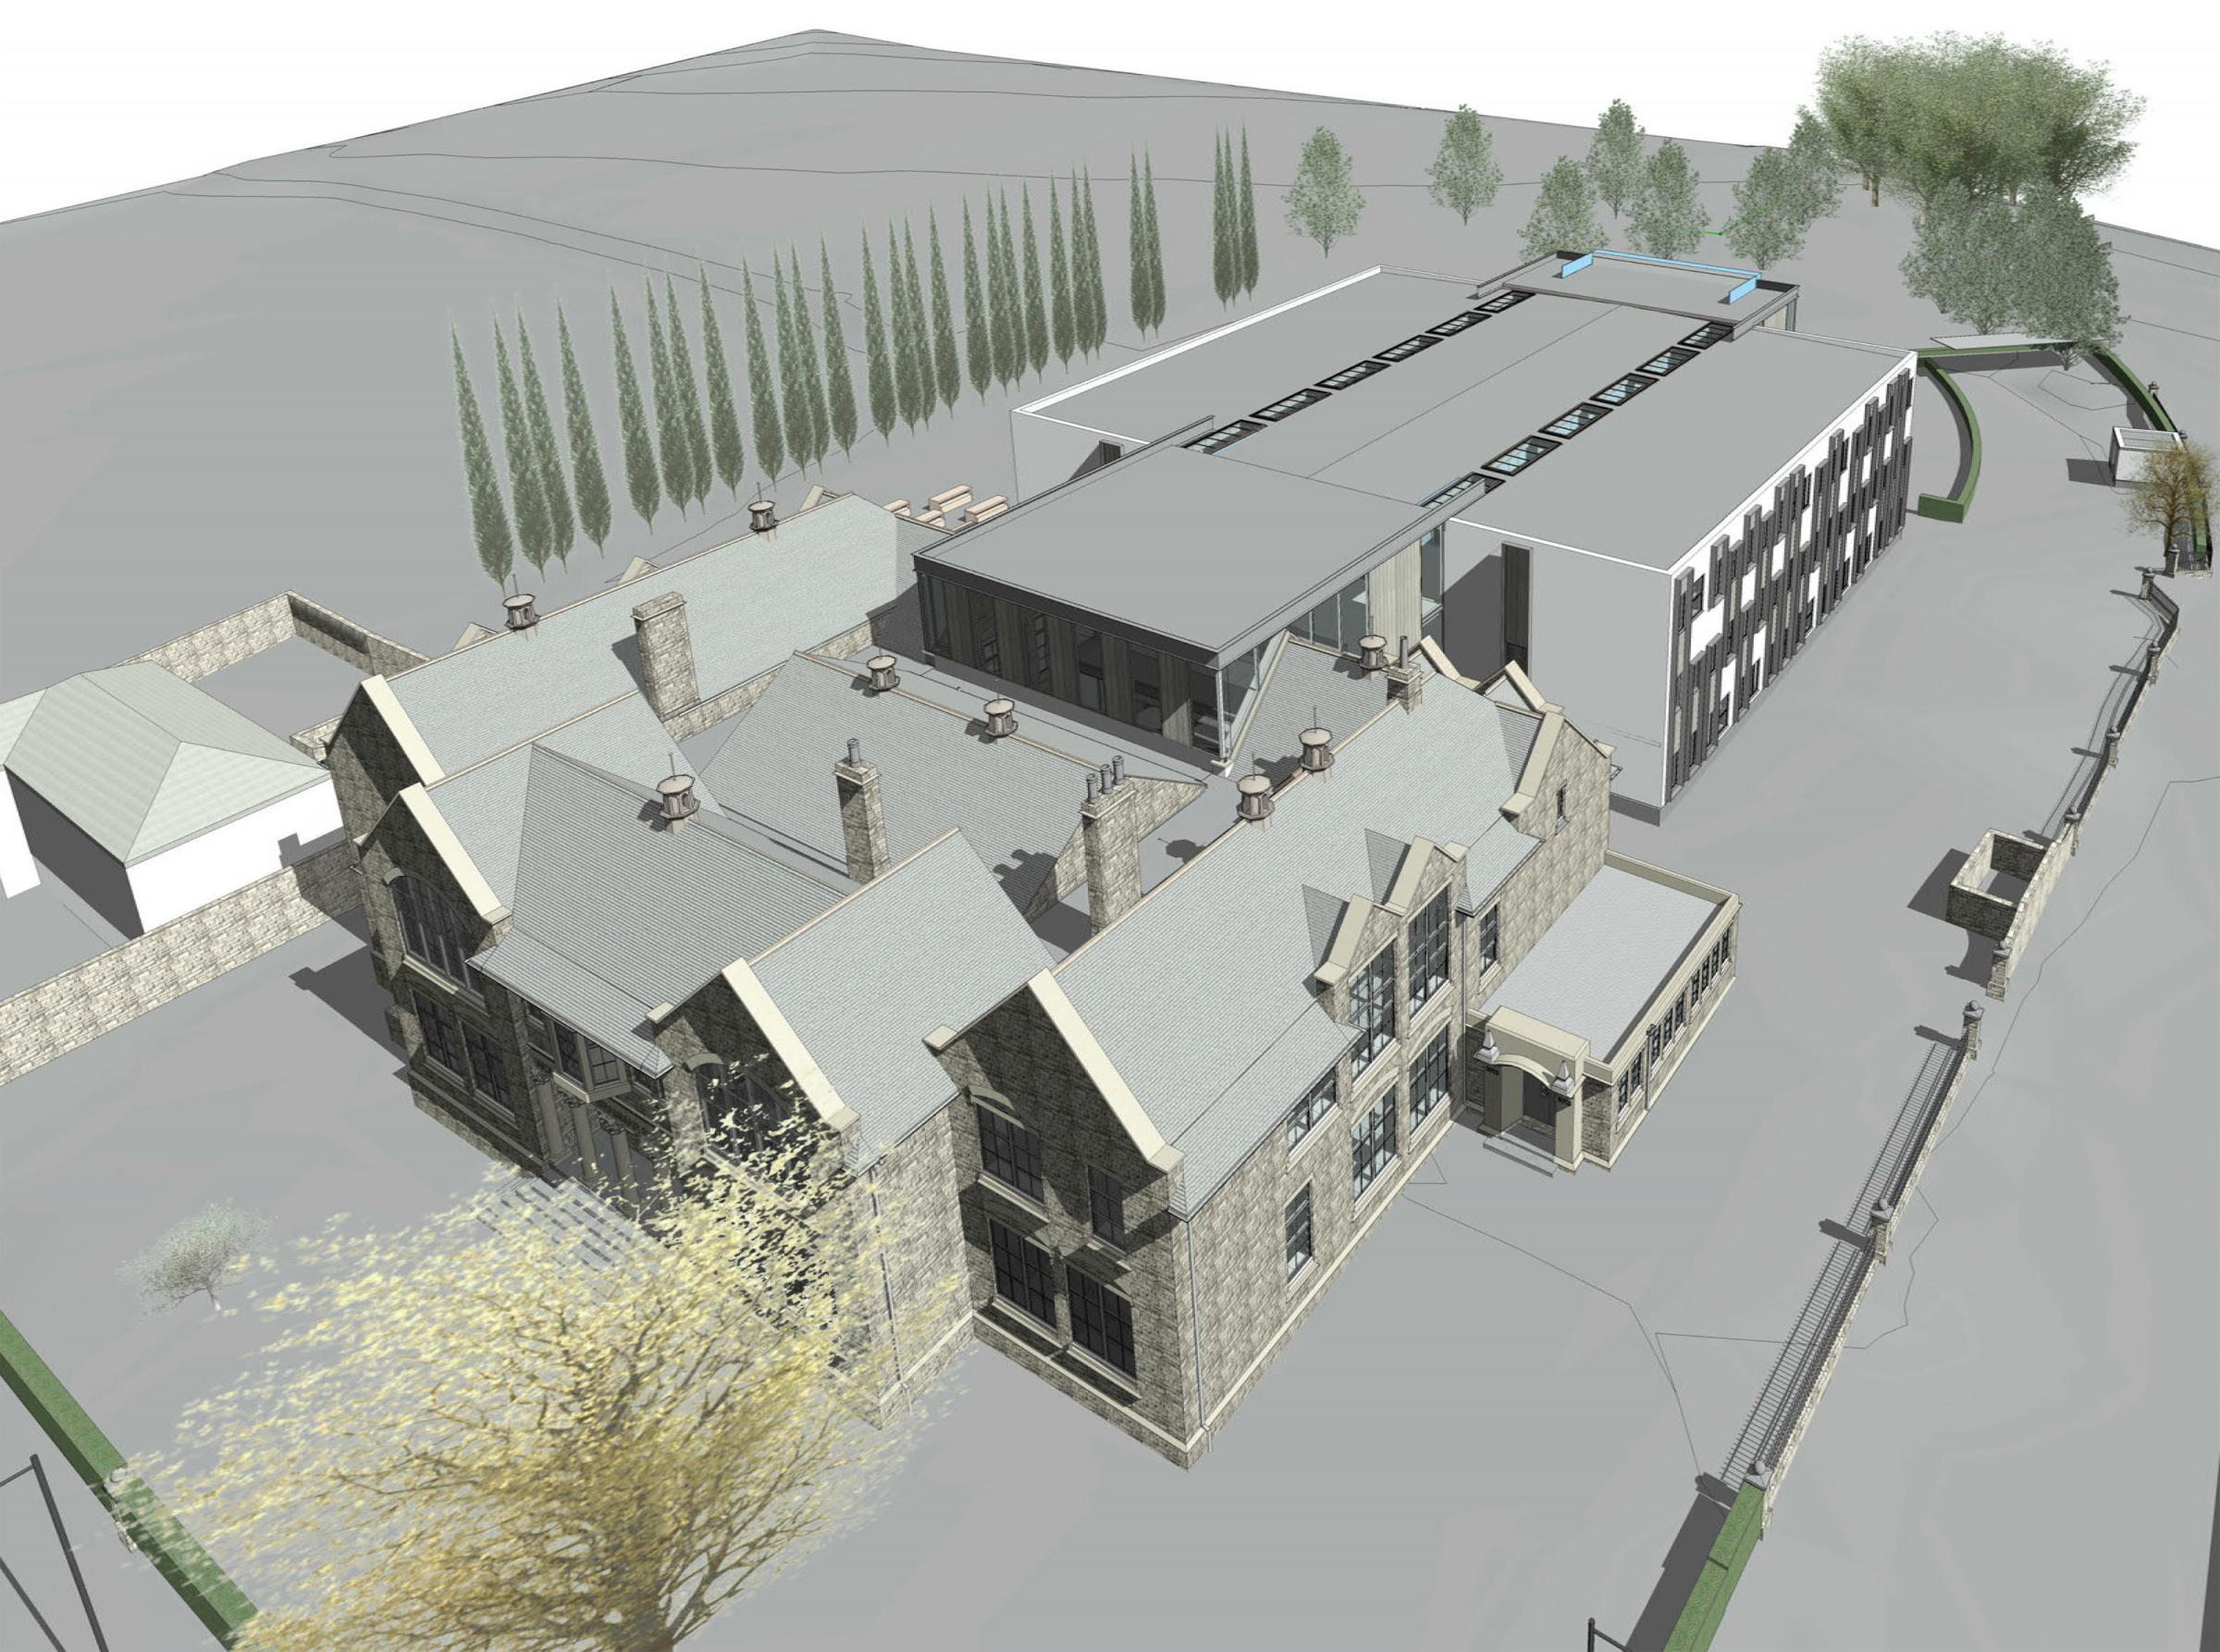 An artist's impression of the new look school submitted to Durham County Council